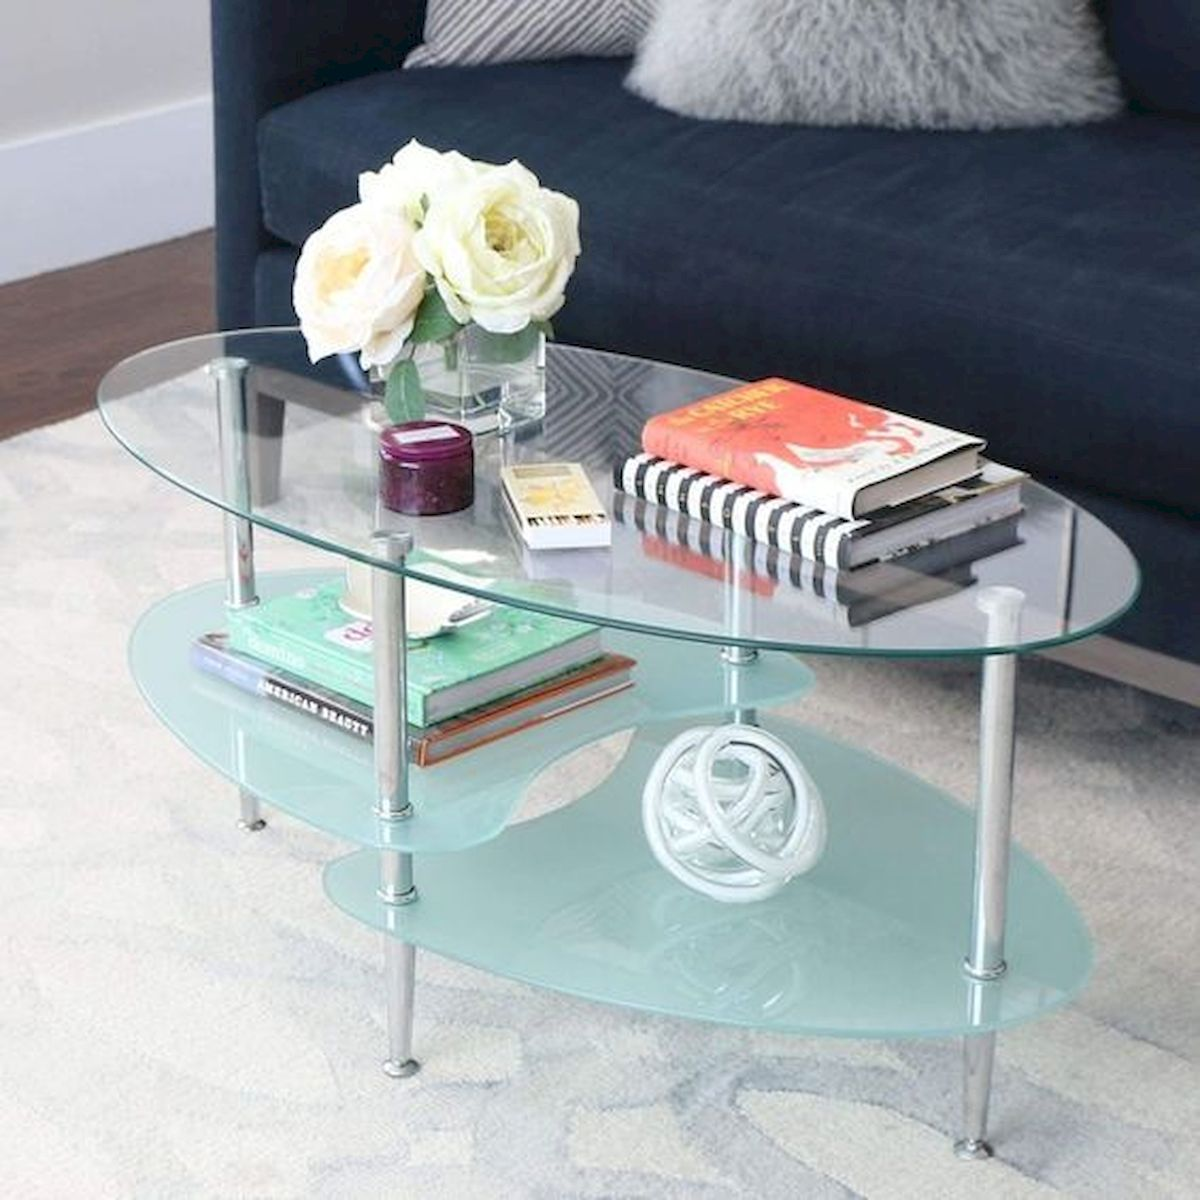 40 Awesome Modern Glass Coffee Table Design Ideas For Your Living Room (32)